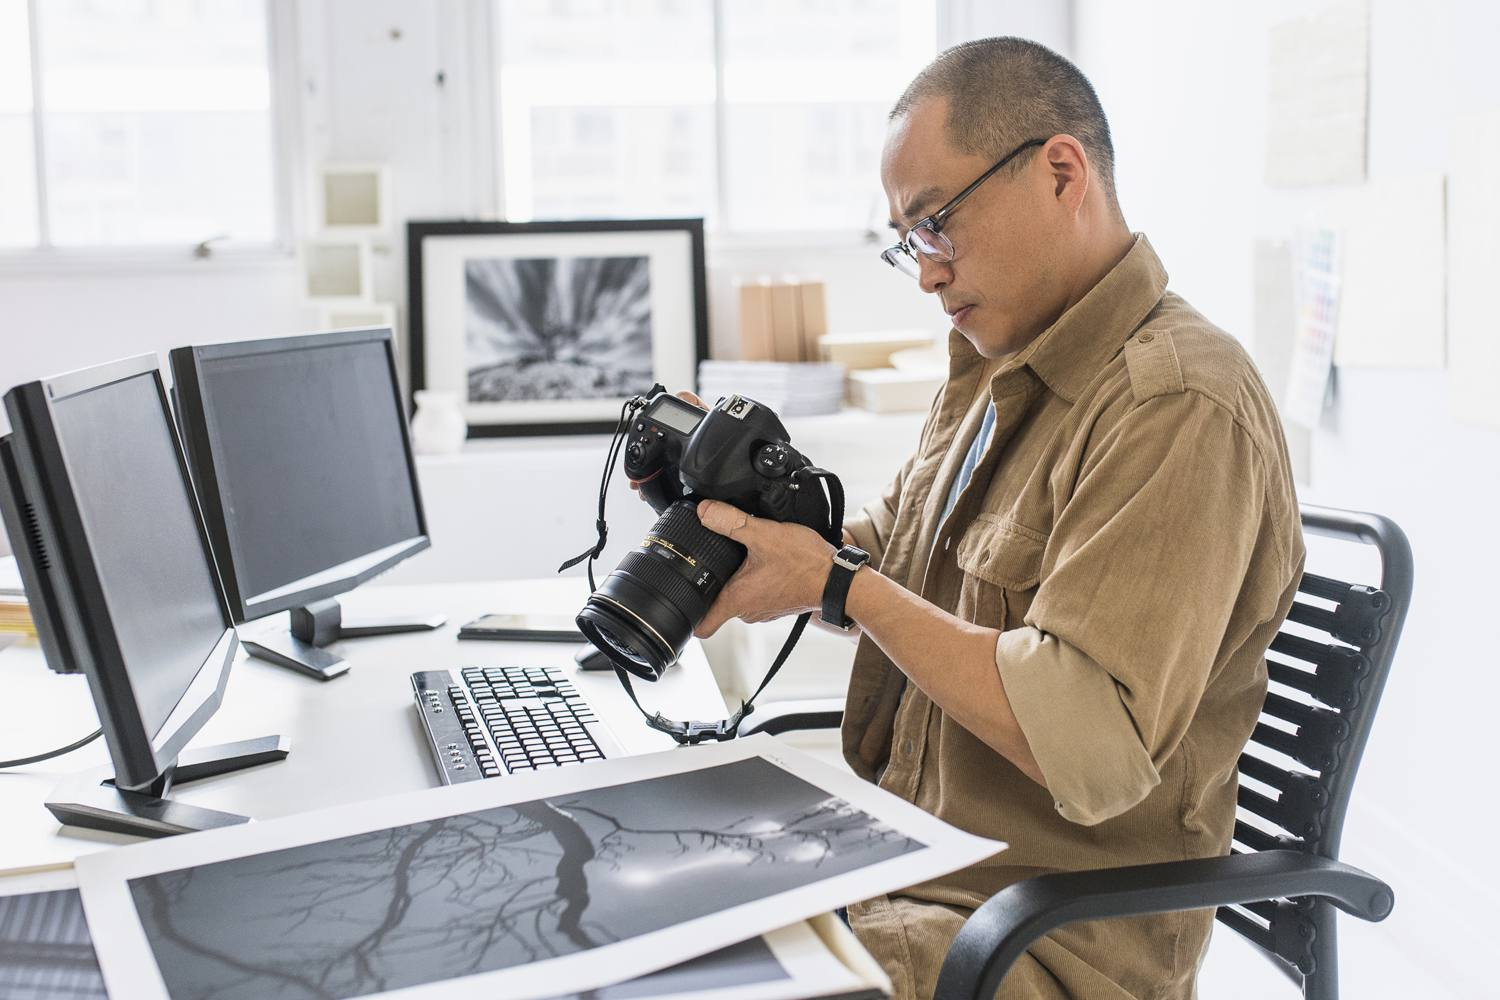 A photographer looks at his photos